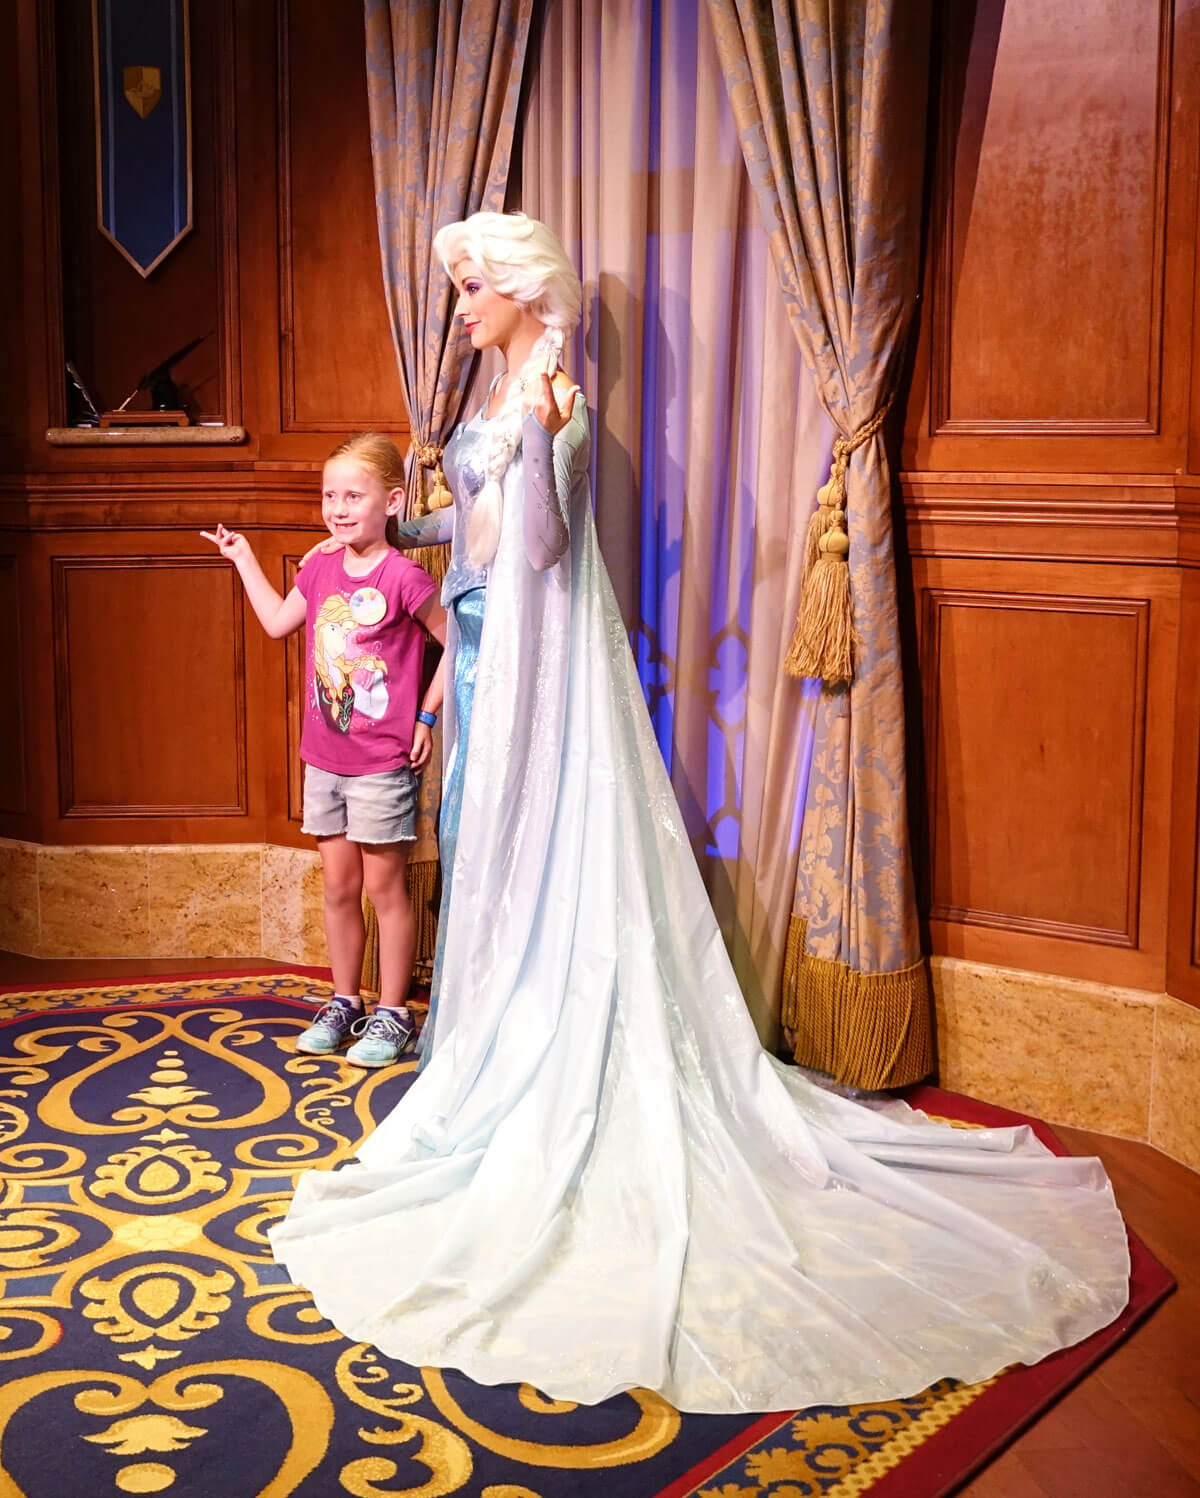 Meeting Elsa and Anna at Disney World - Queen Elsa